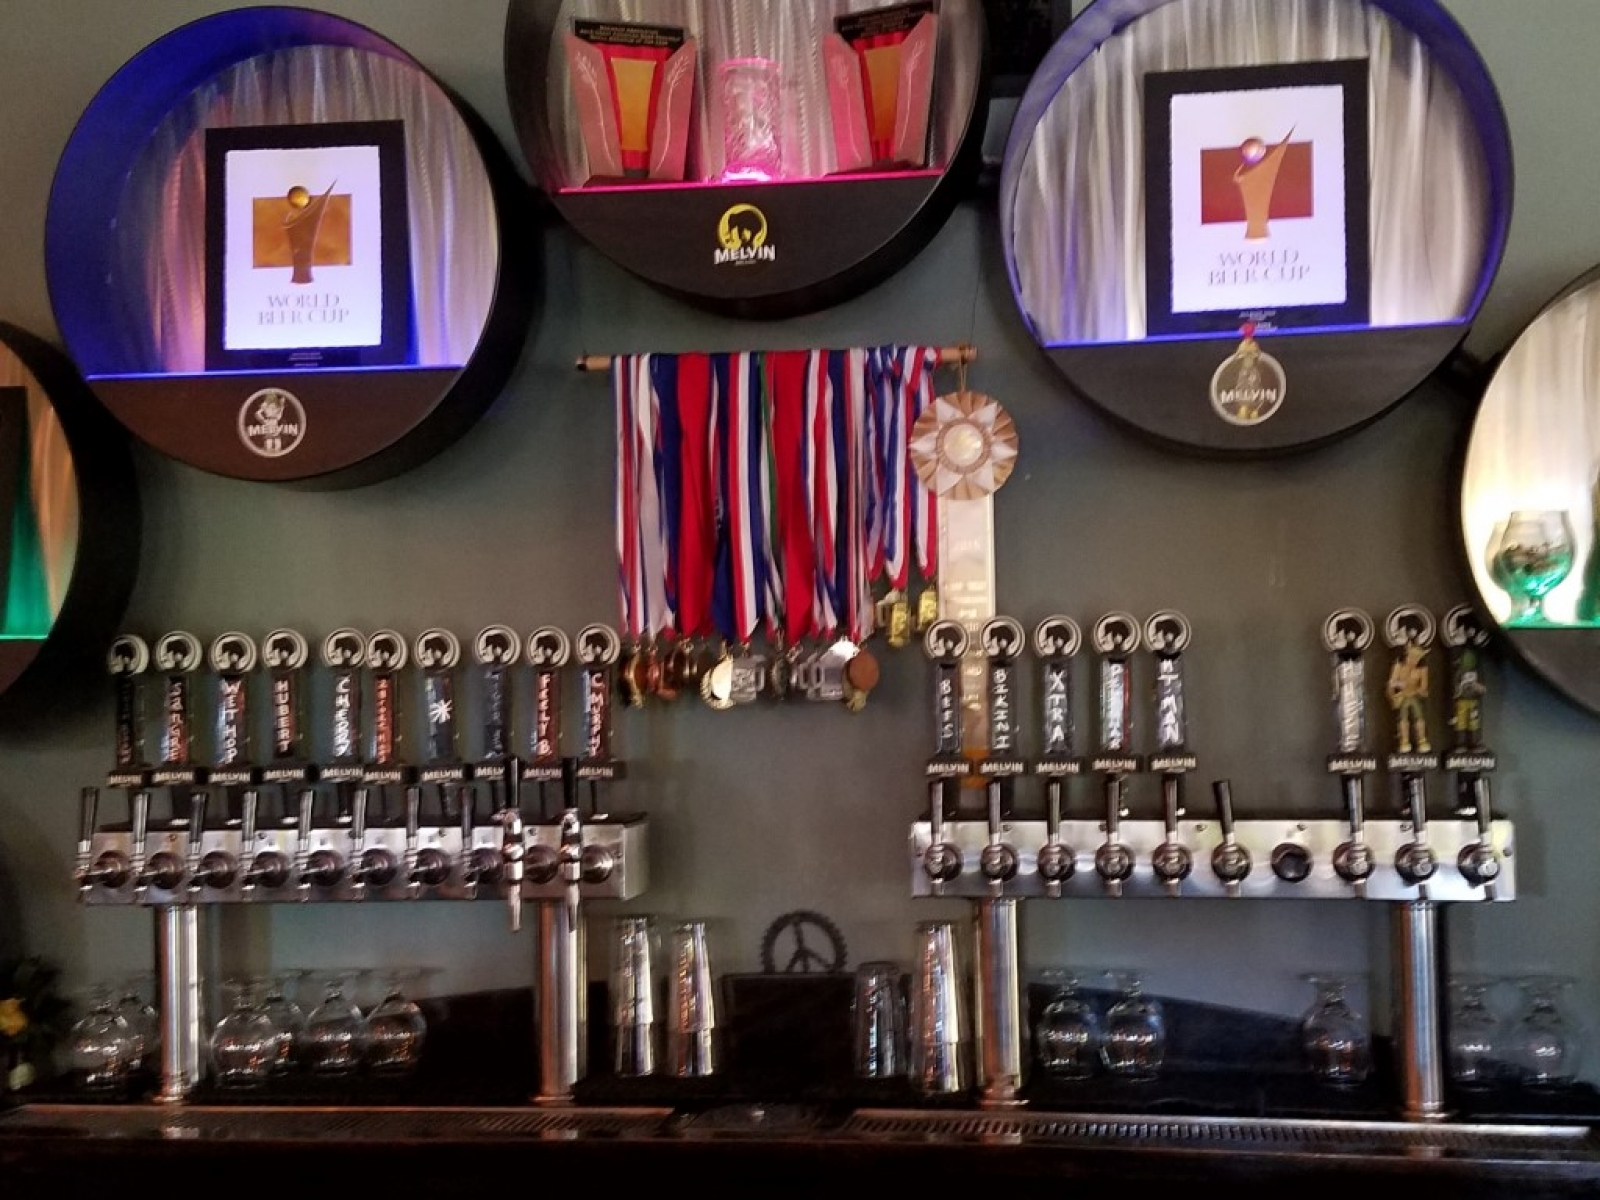 Taps and medals